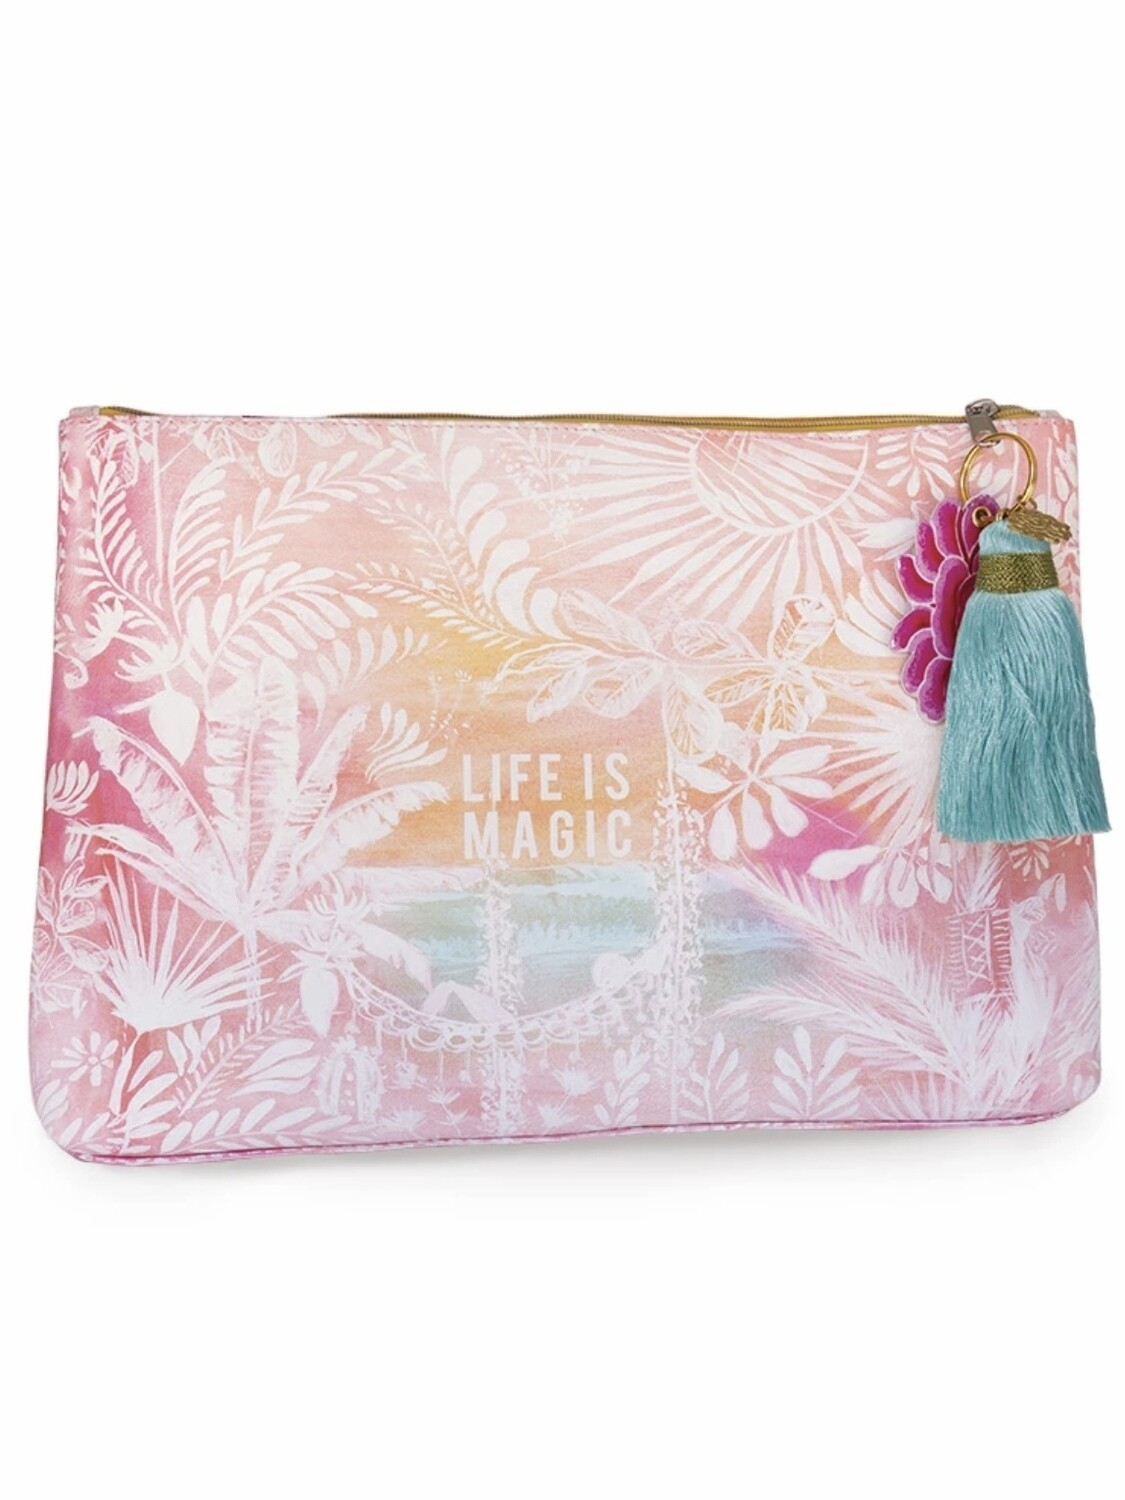 Life Is Magic Large Pouch - PAB13